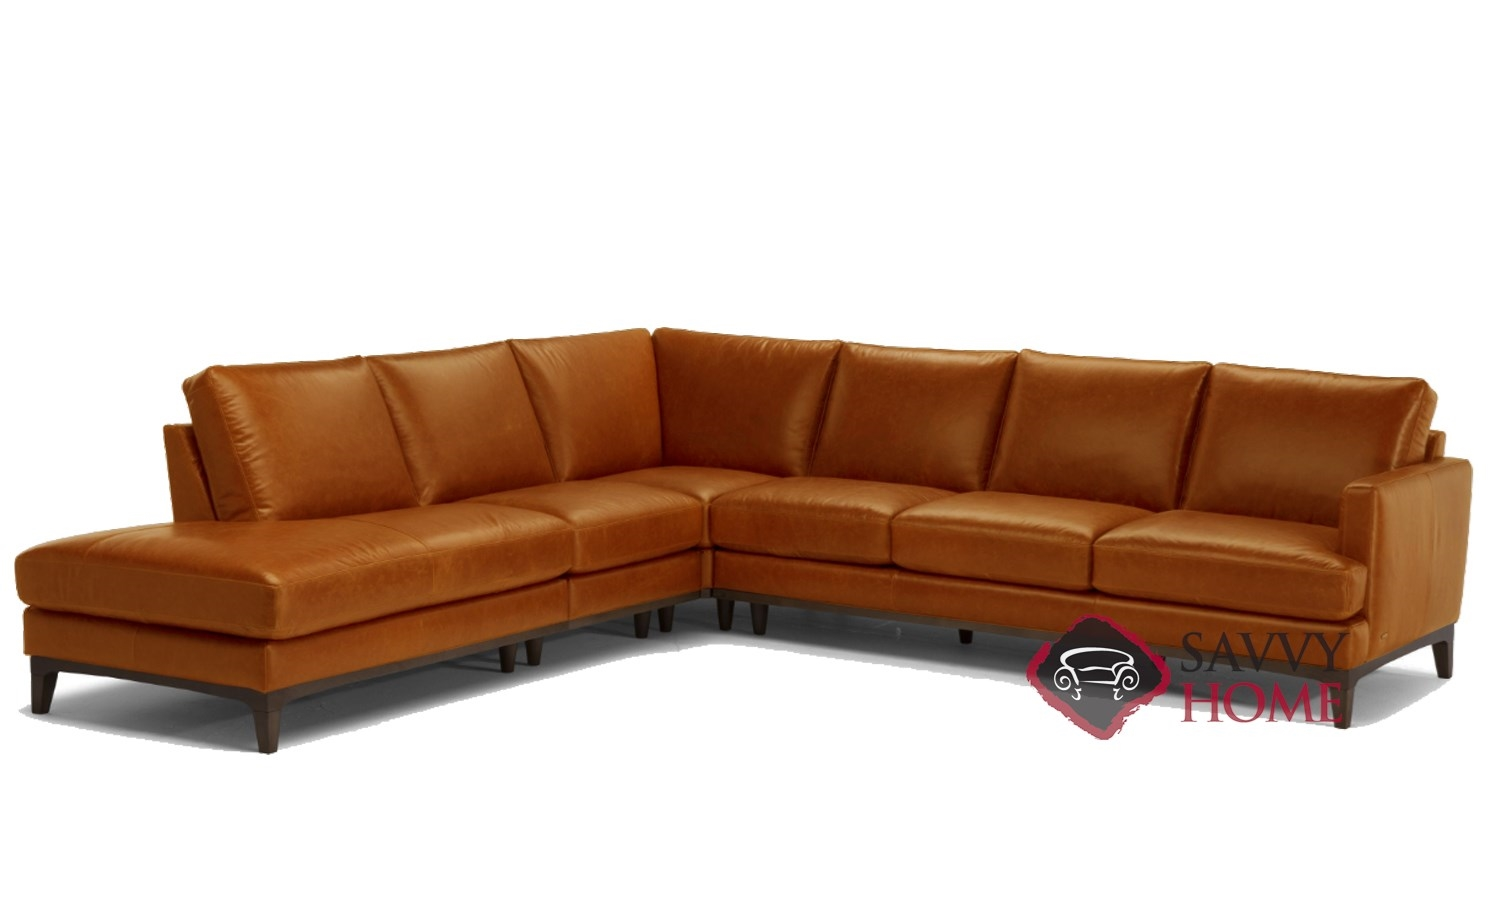 Large Leather Sectional Chaise